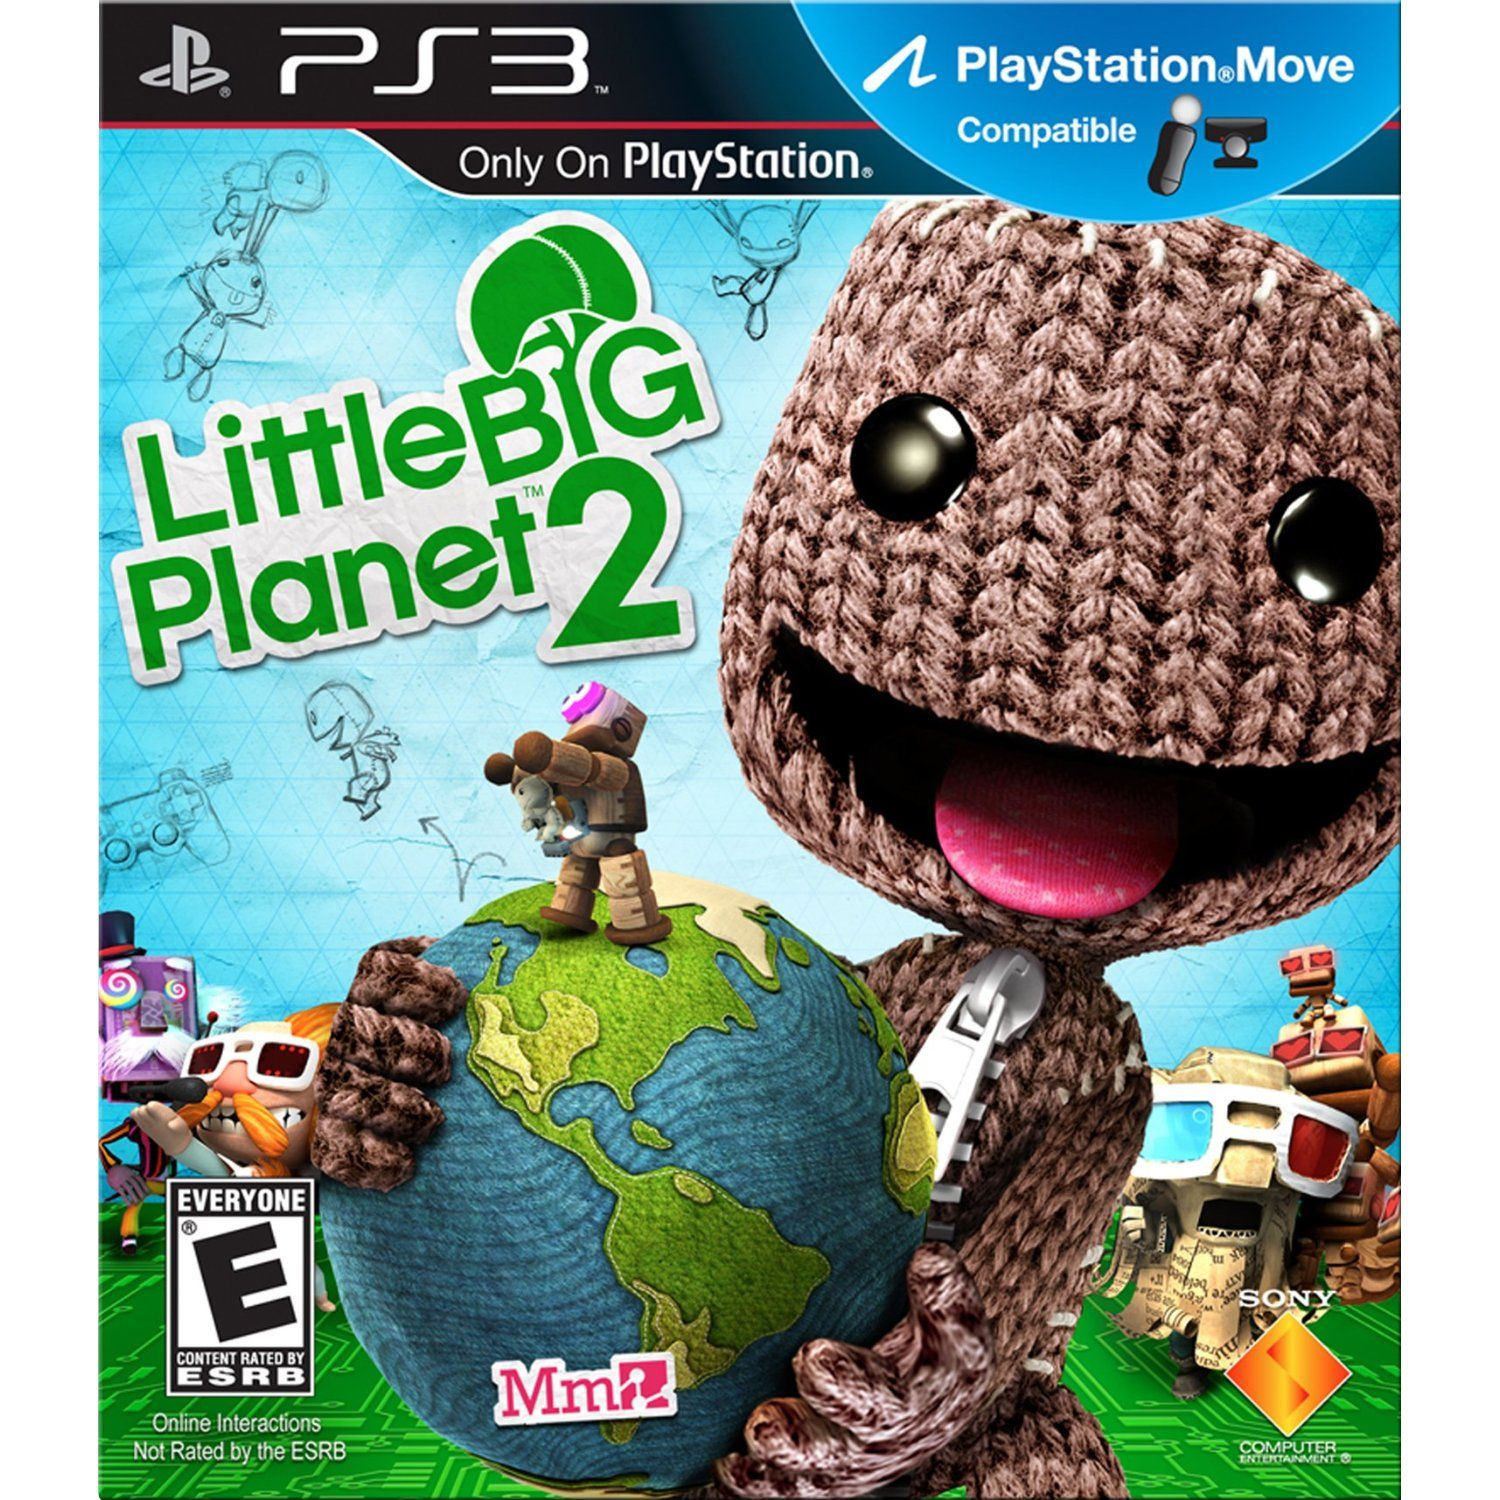 Littlebigplanet 3 version for pc gamesknit.